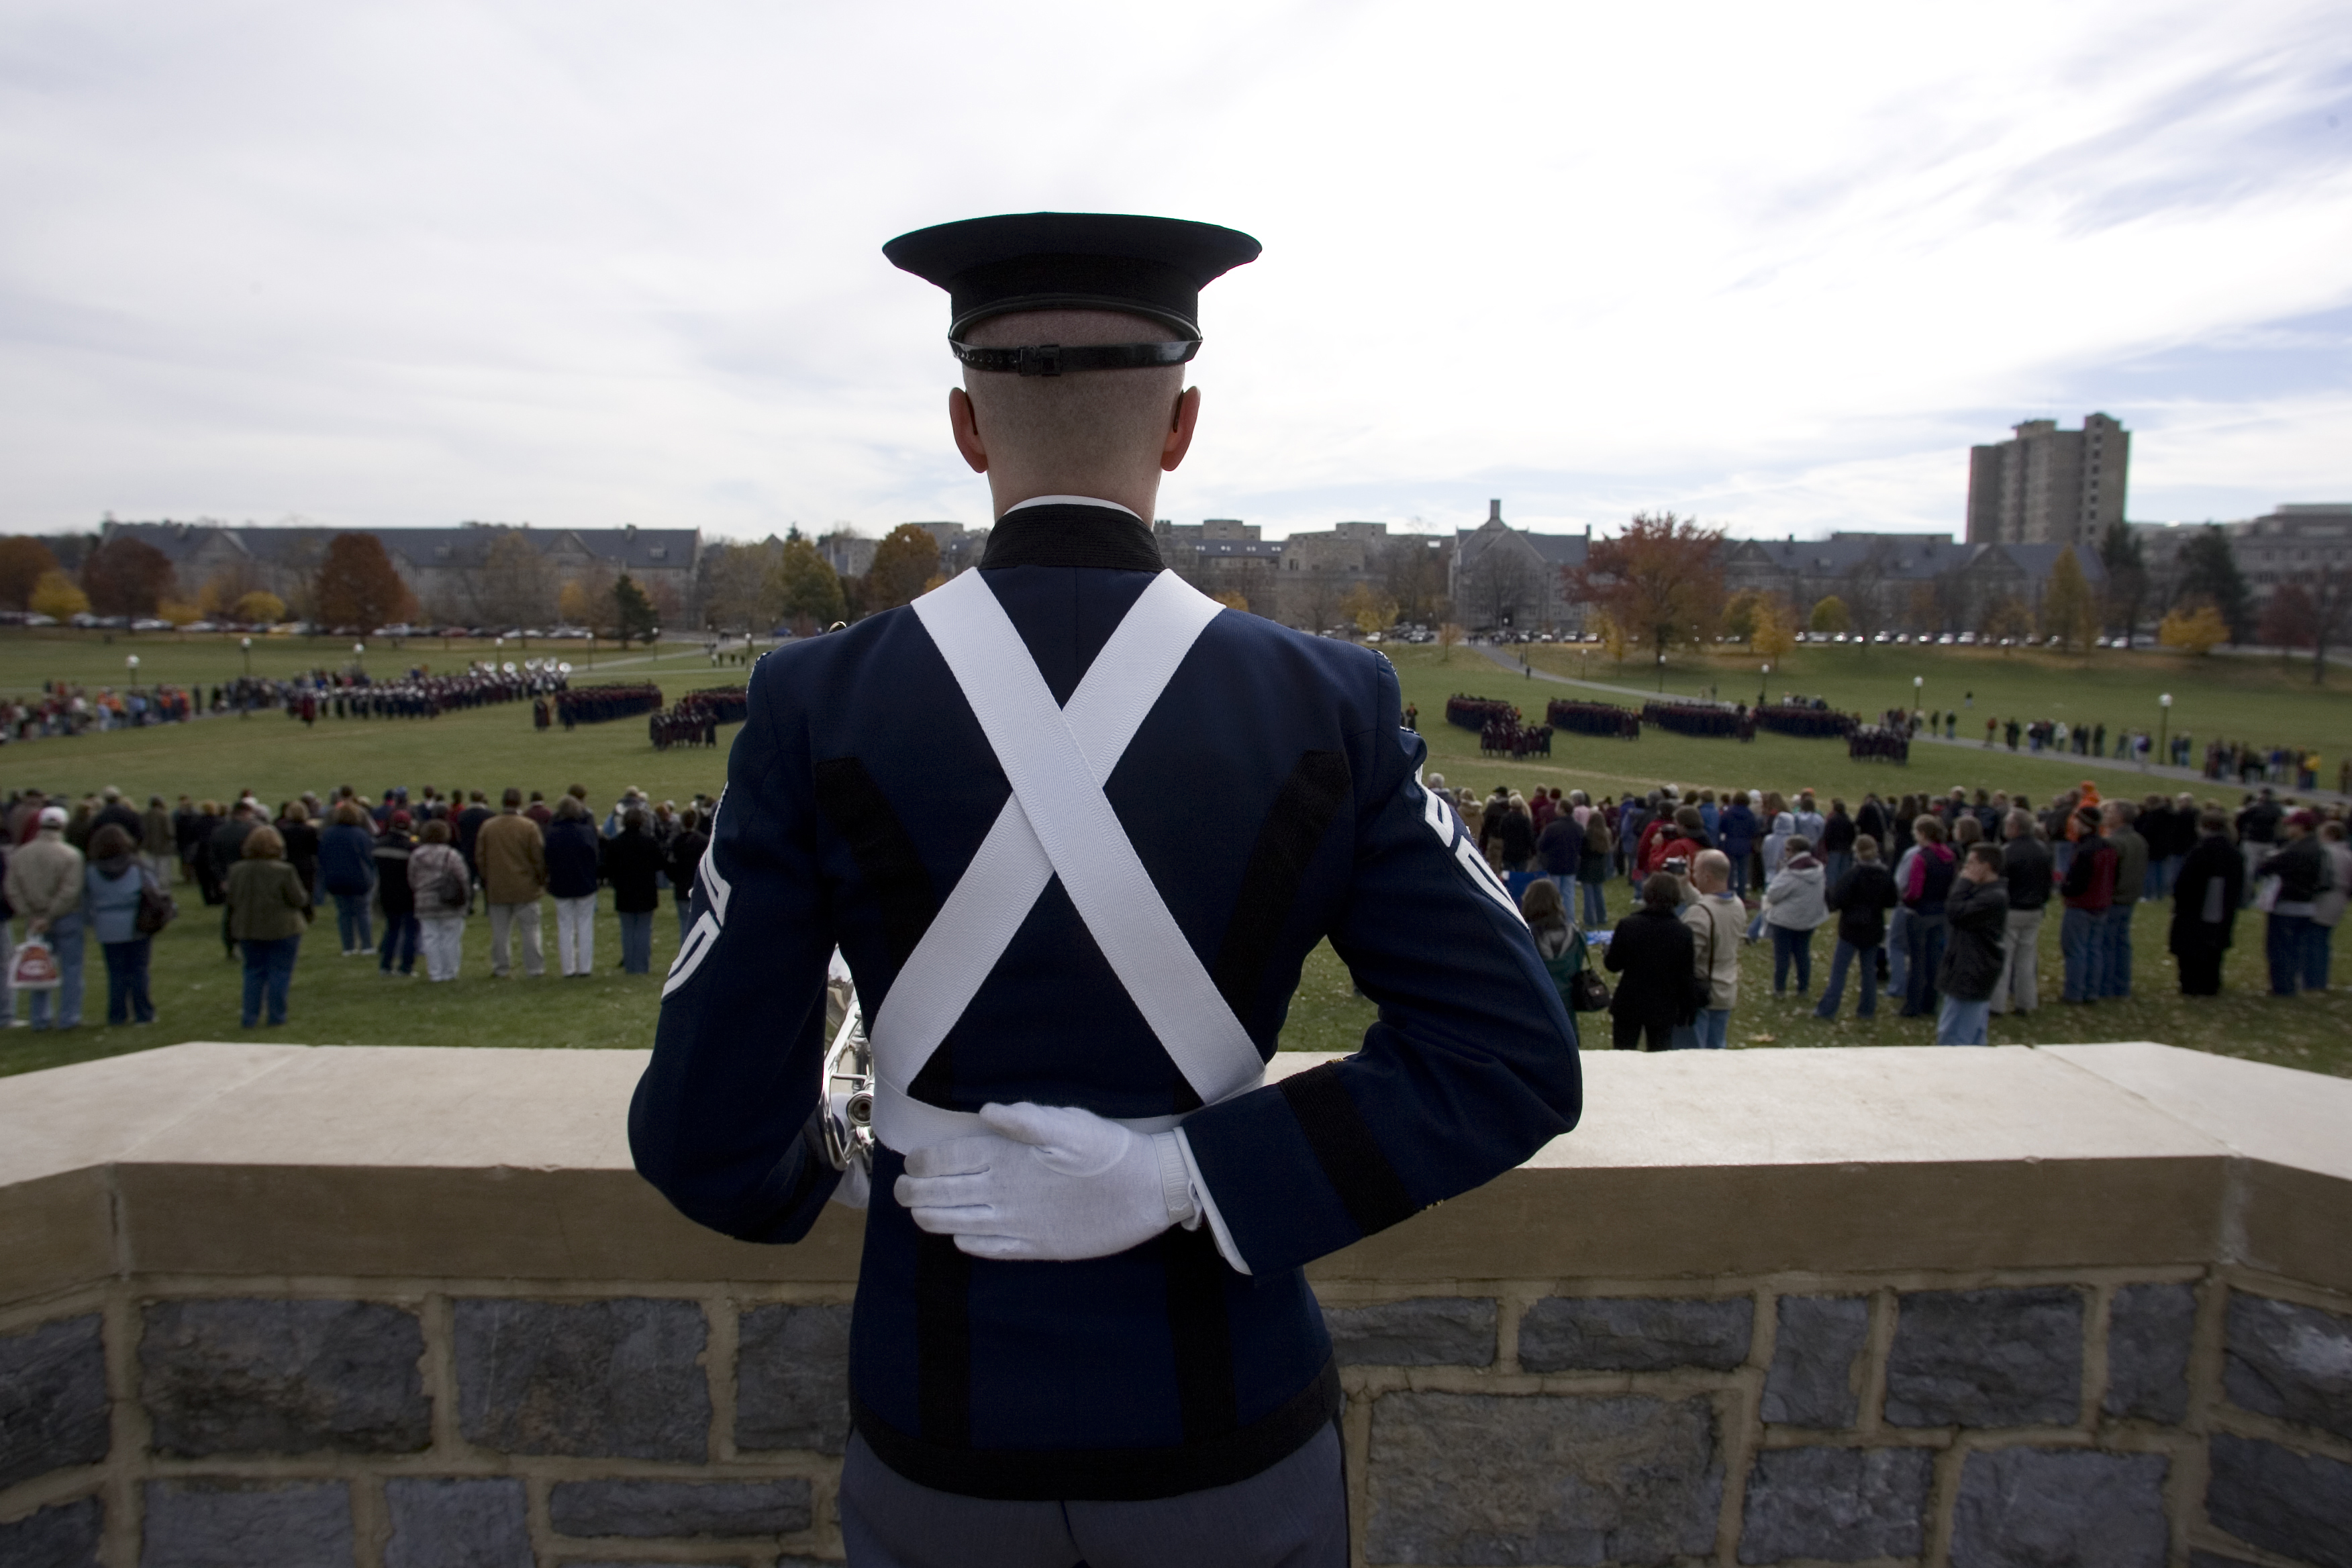 A cadet watches marching formations from the War Memorial